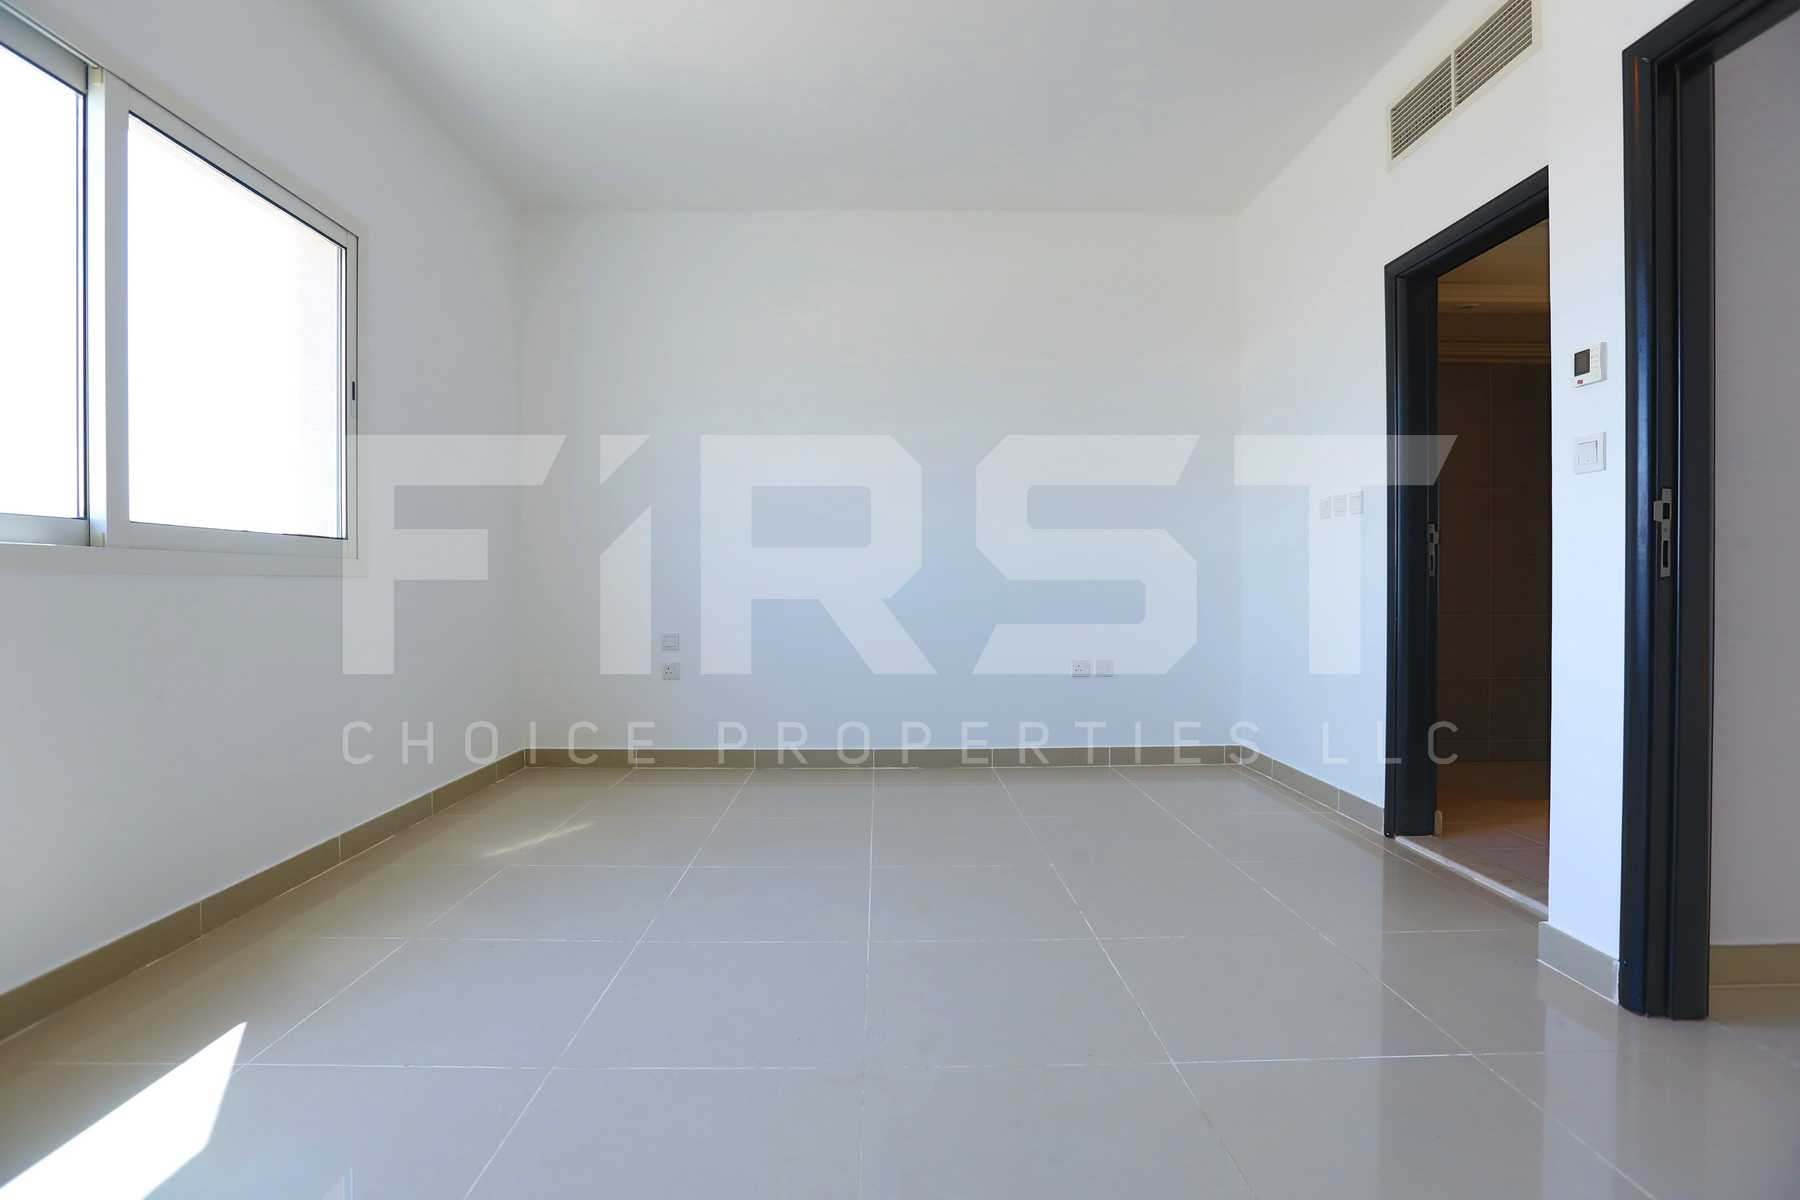 Internal Photo of 3 Bedroom Villa in Al Reef Villas Al Reef Abu Dhabi UAE 225.2 sq.m 2424 sq.ft (26).jpg